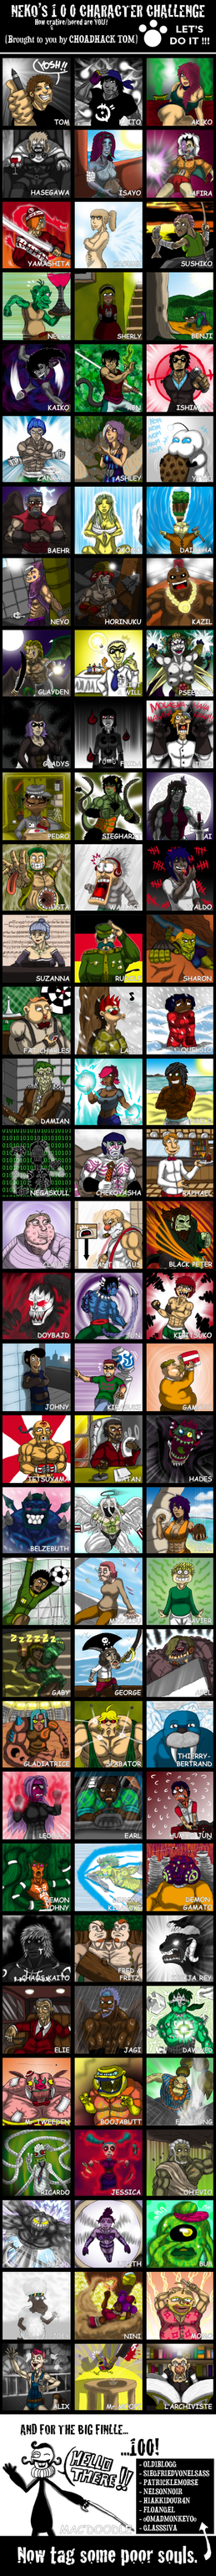 The 100 Characters Challenge Meme by Kaitoraikan